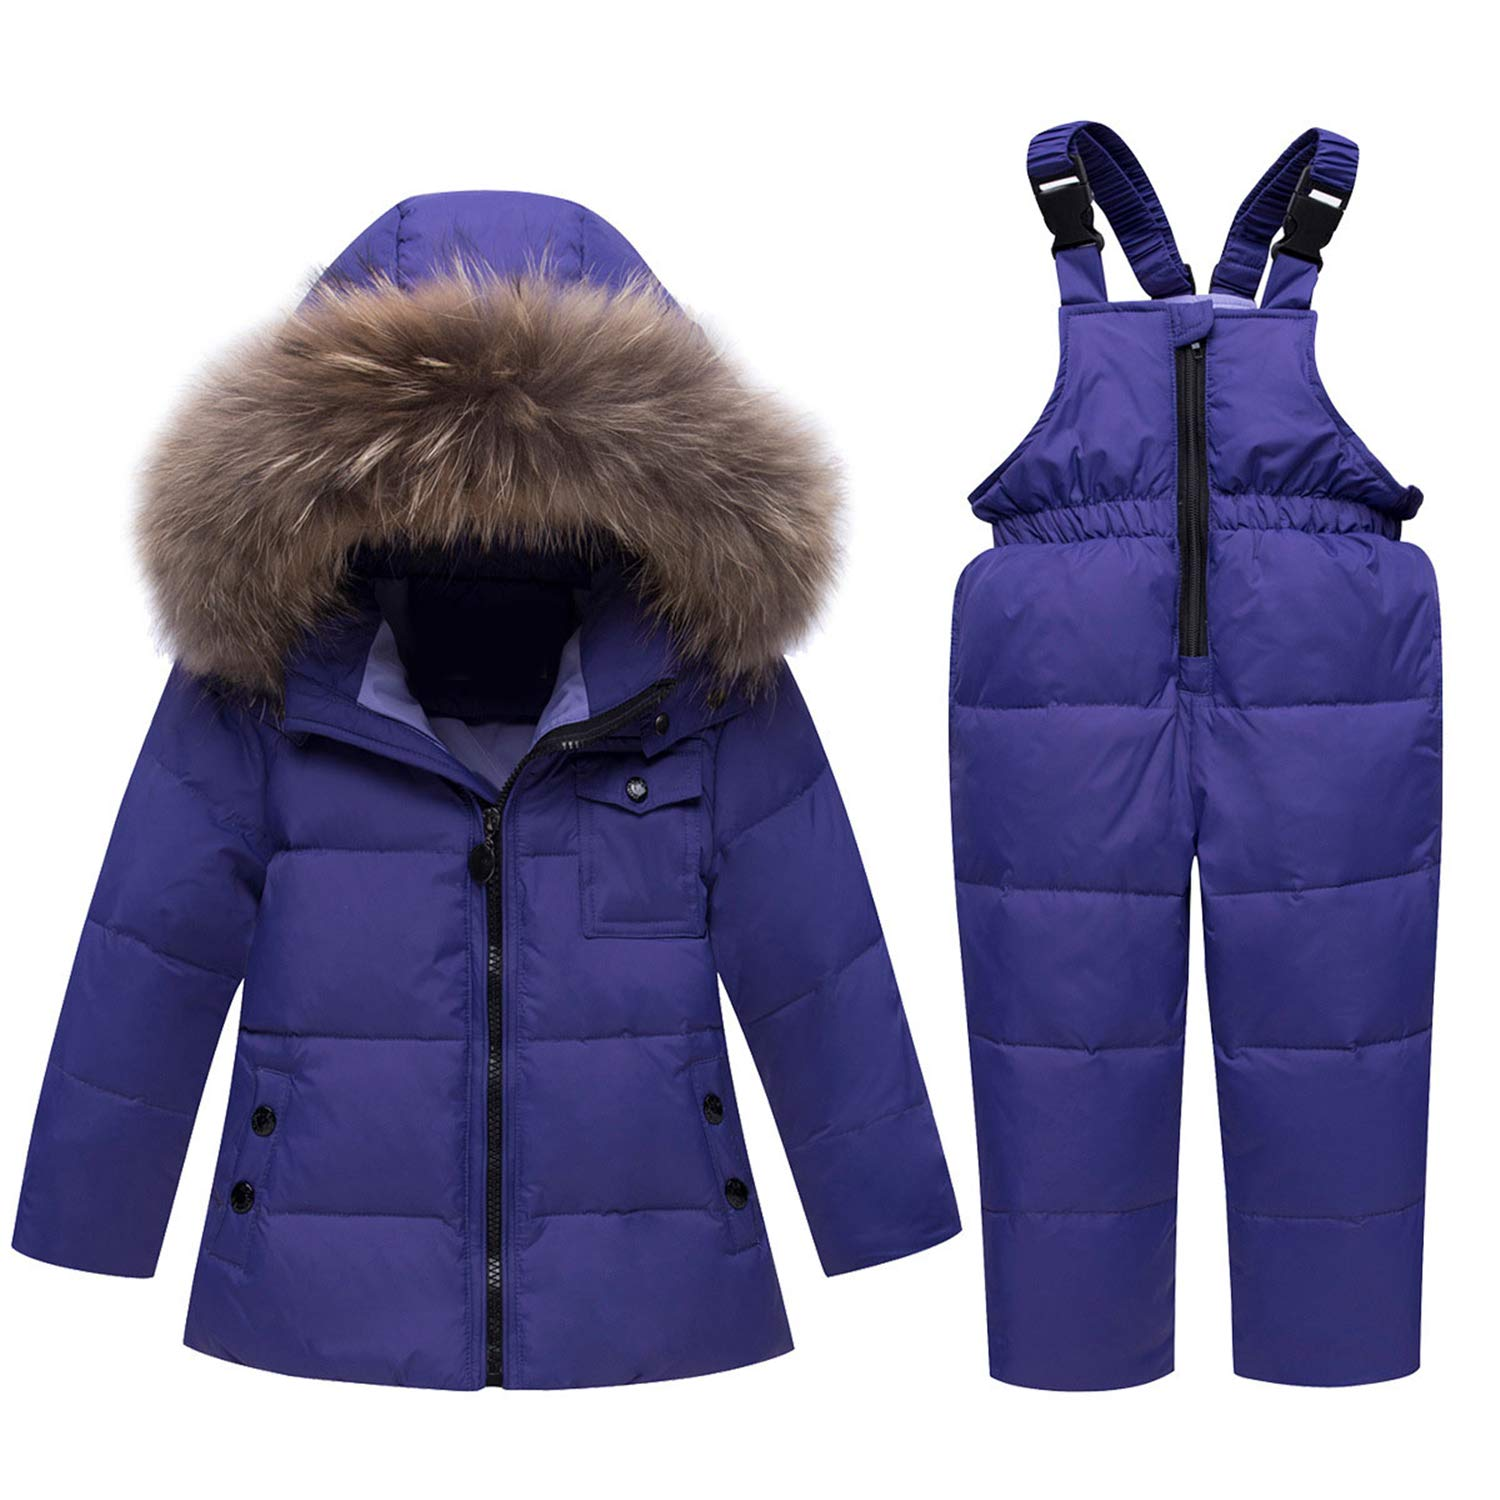 fd805e92e Amazon.com  Russian Winter Suits for Boys Girls Ski Suit Children ...